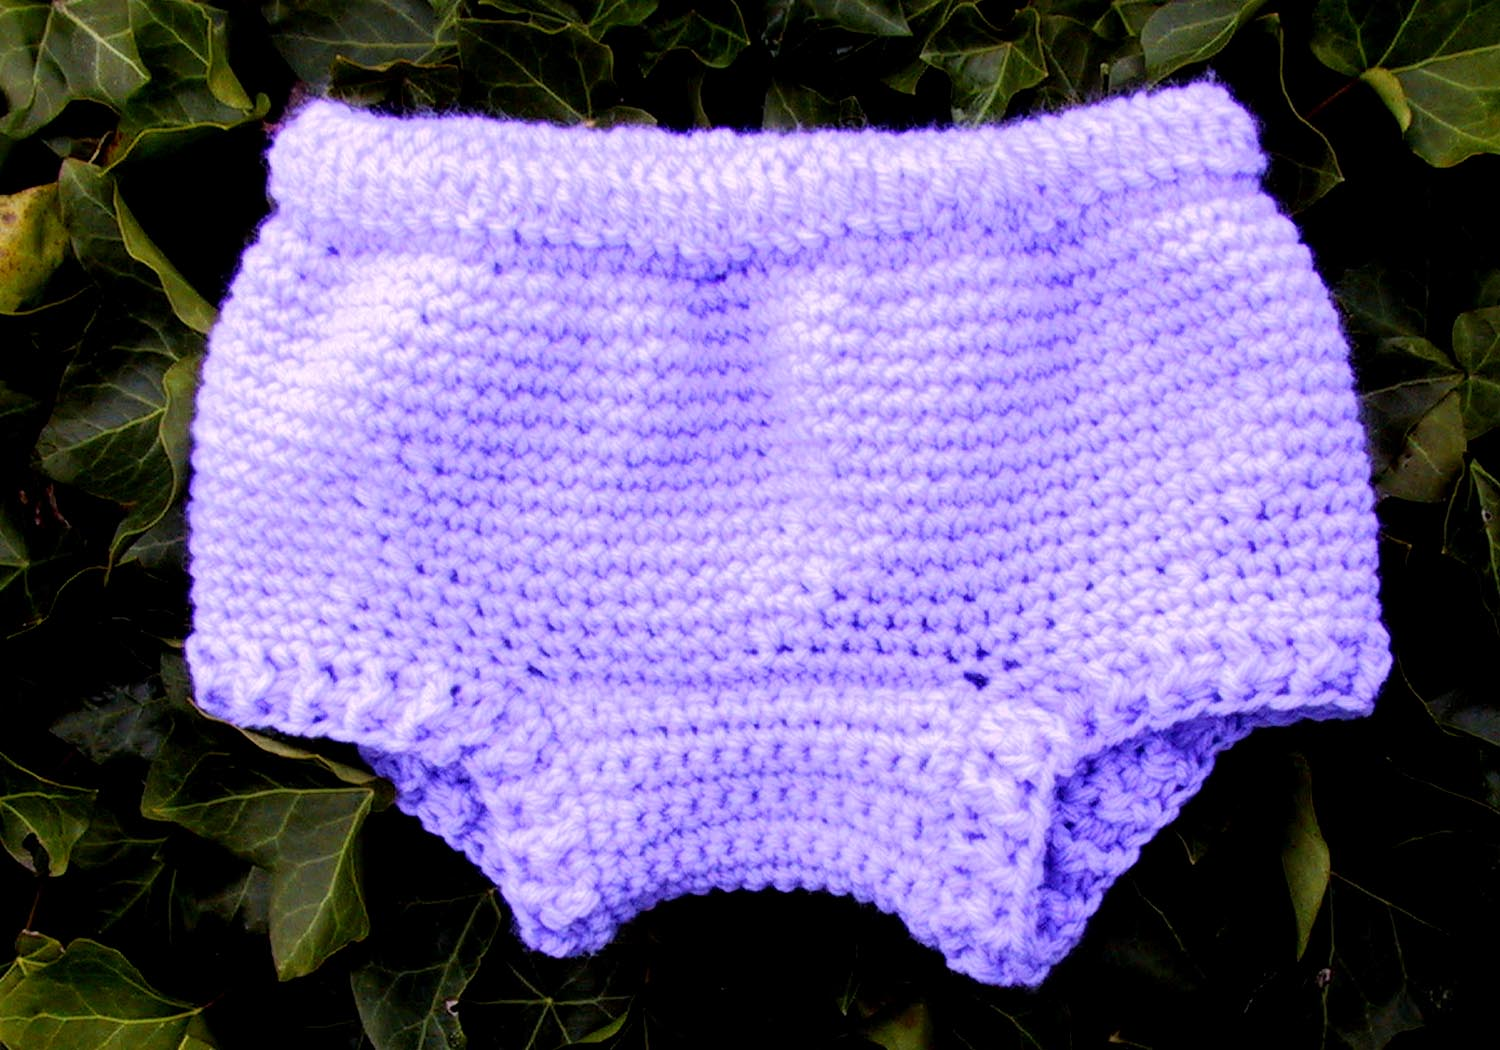 Free Crochet Pattern For Baby Diaper Soaker : CROCHET PATTERN DIAPER COVER - Crochet Club